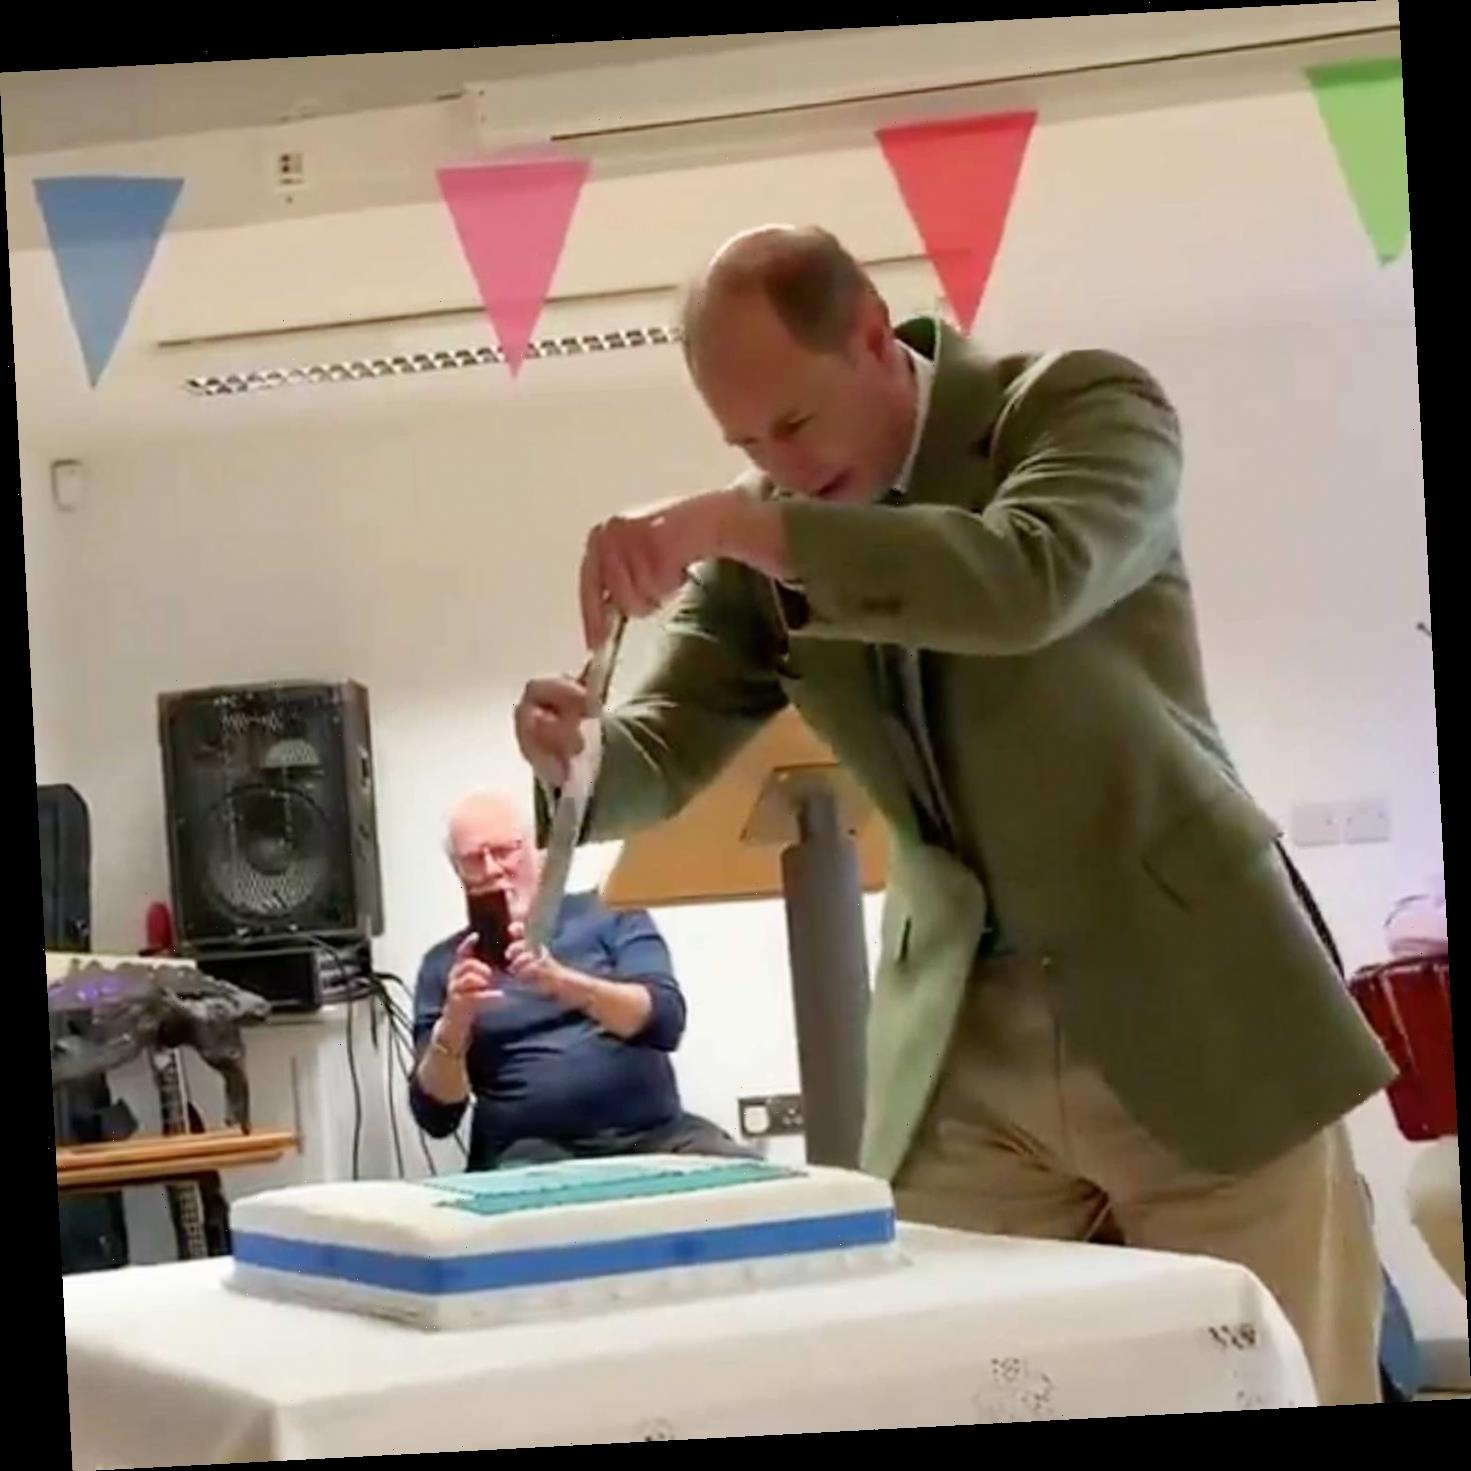 Prince Edward Has A Weird Way Of Cutting Cake, And It's Very … Stabby